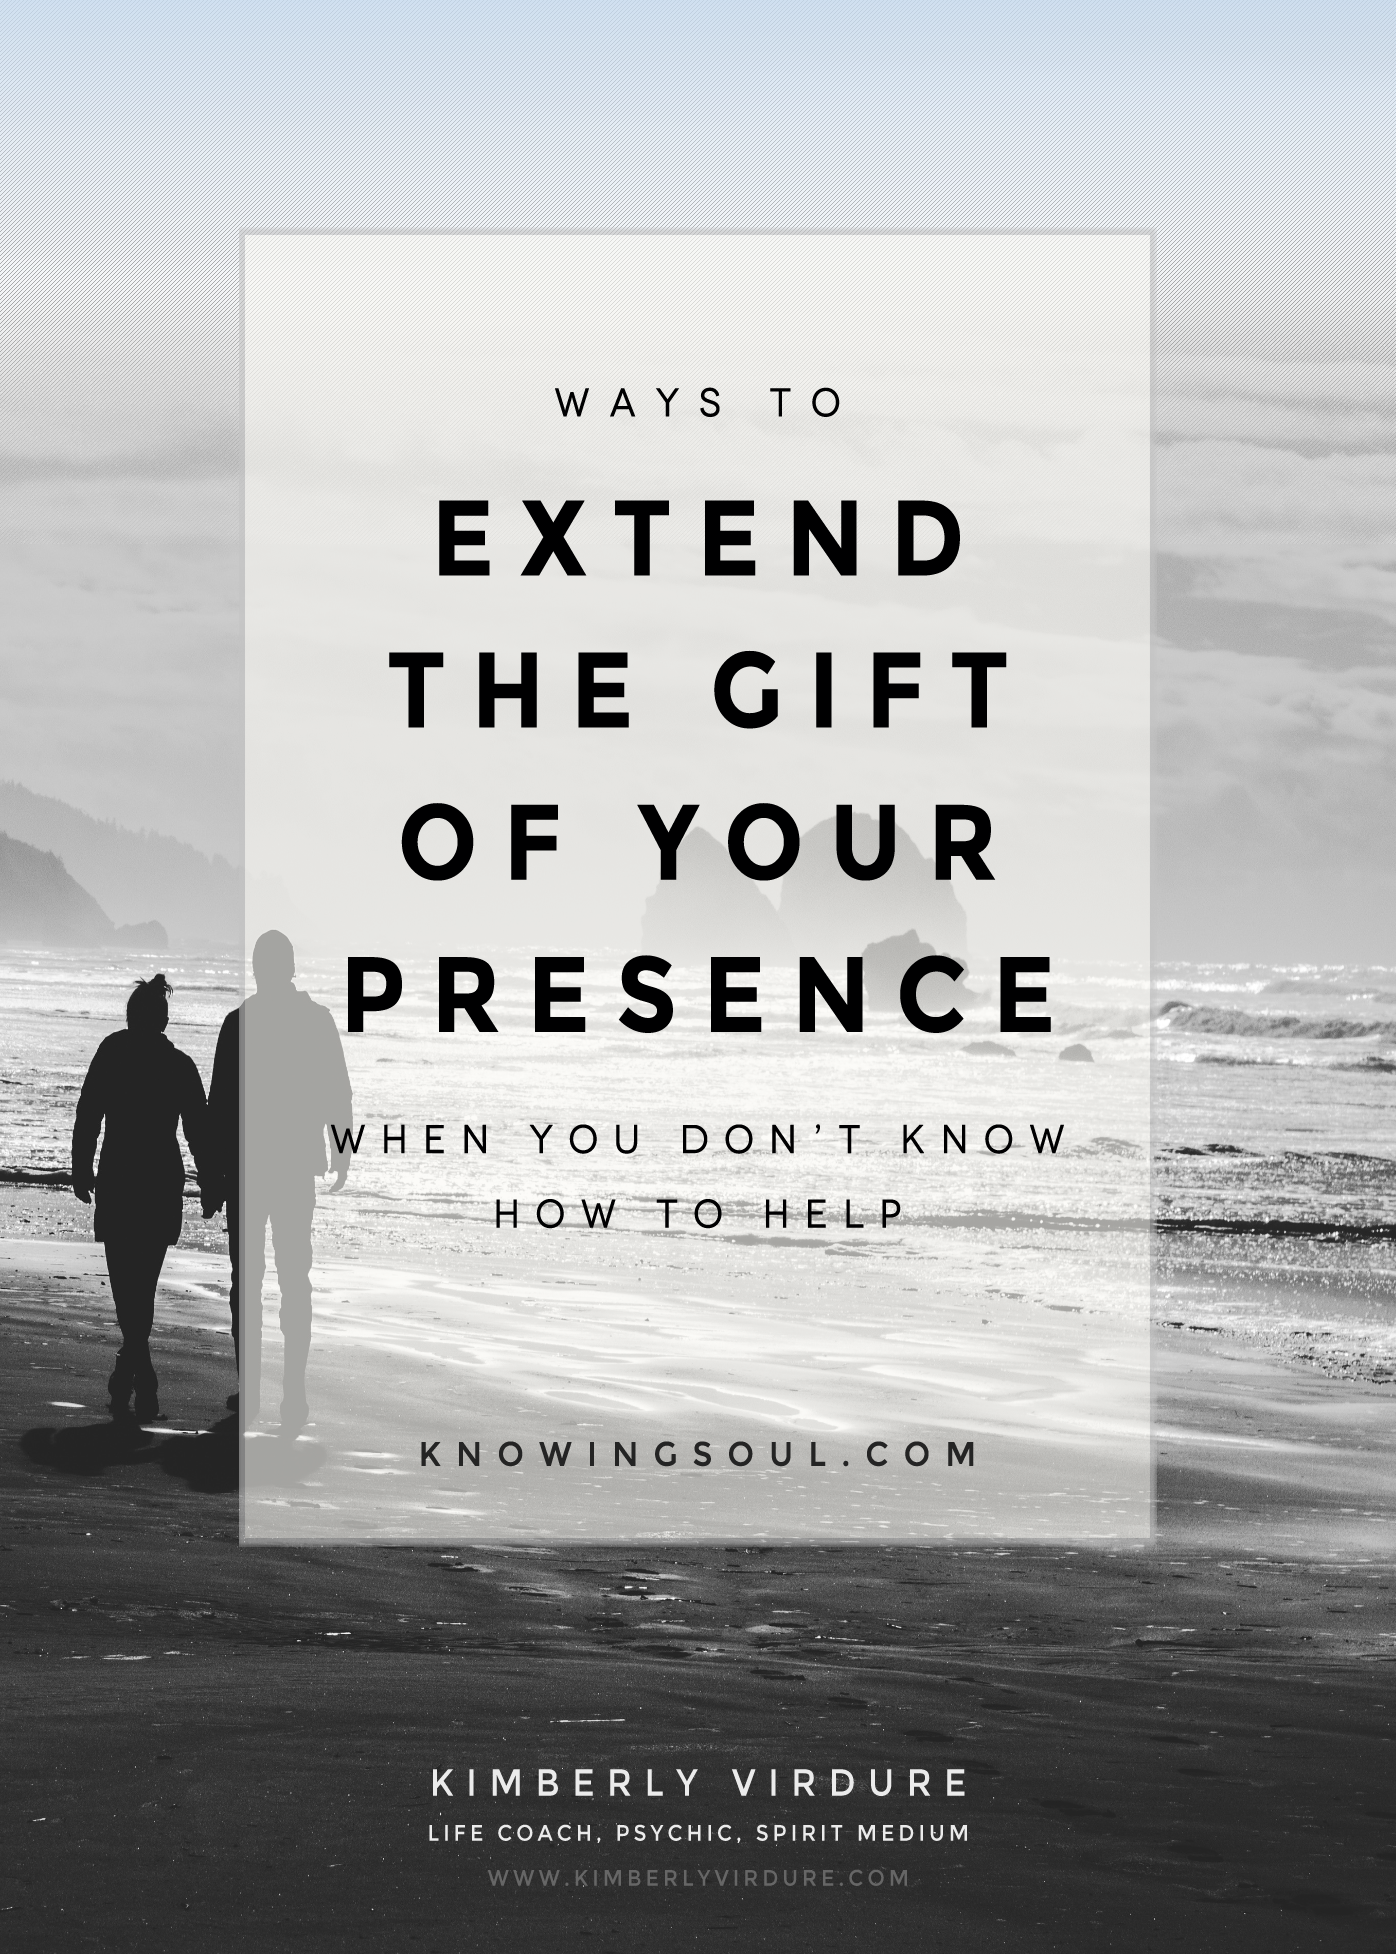 Ways to extend the gift of your presence